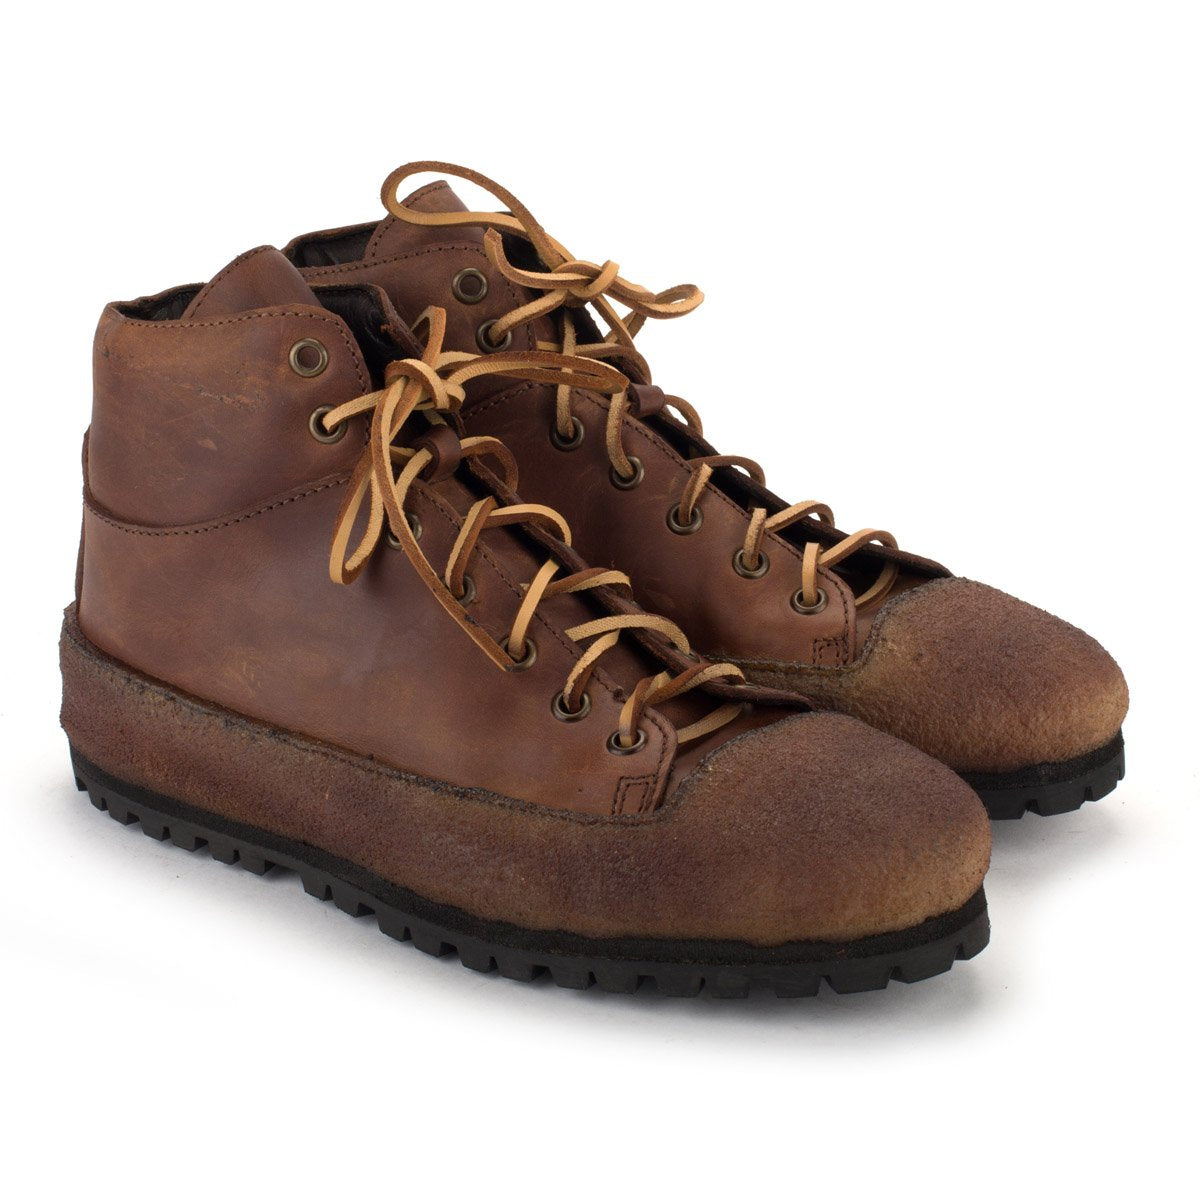 CR24 WATER PROOF BOOTS – Rust